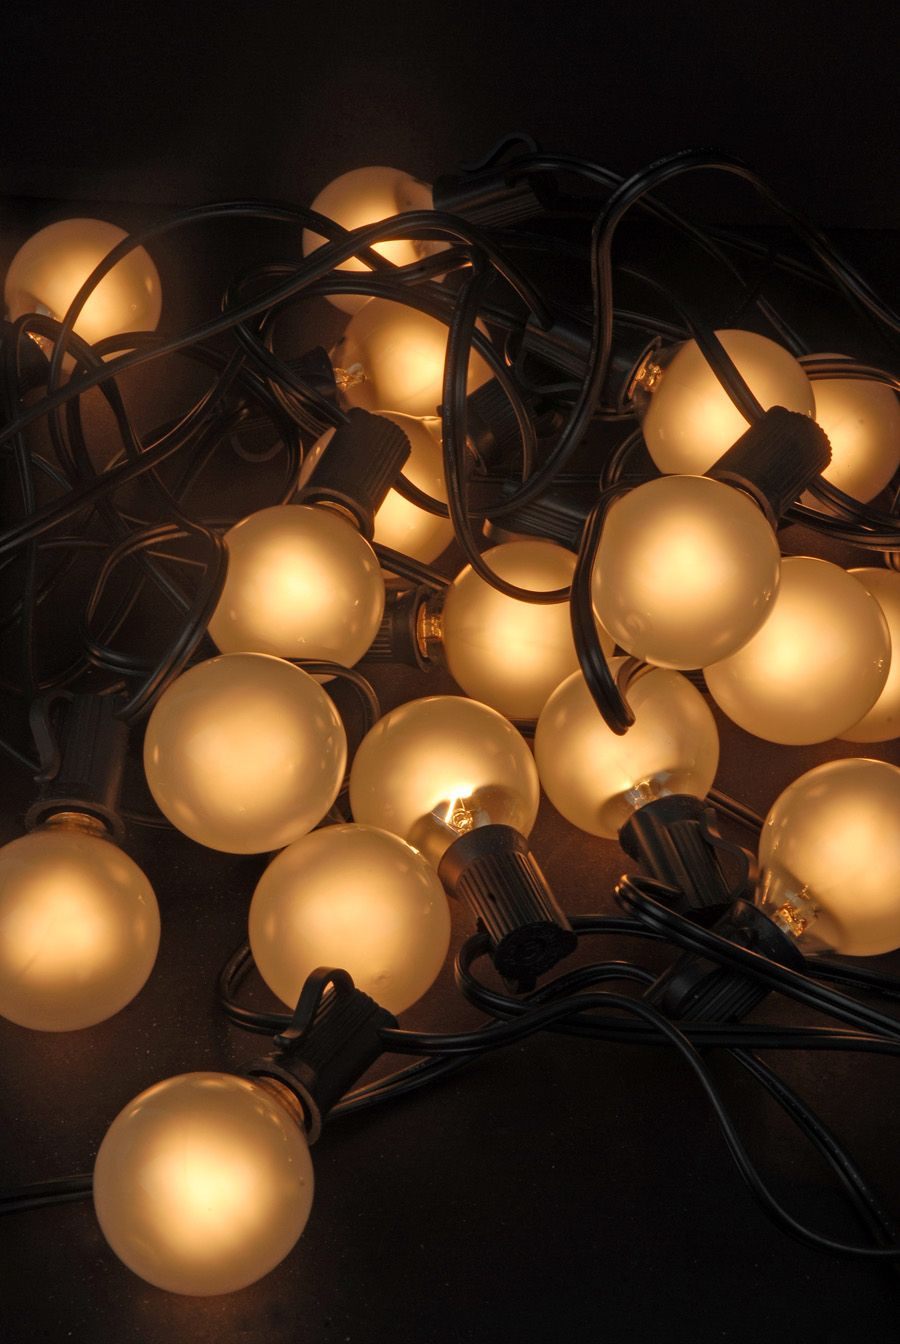 Outdoor Patio String Lights, G40 Frosted Globe, 25 Ct, 28 FT, Black Cord W/  E12 C7 Base